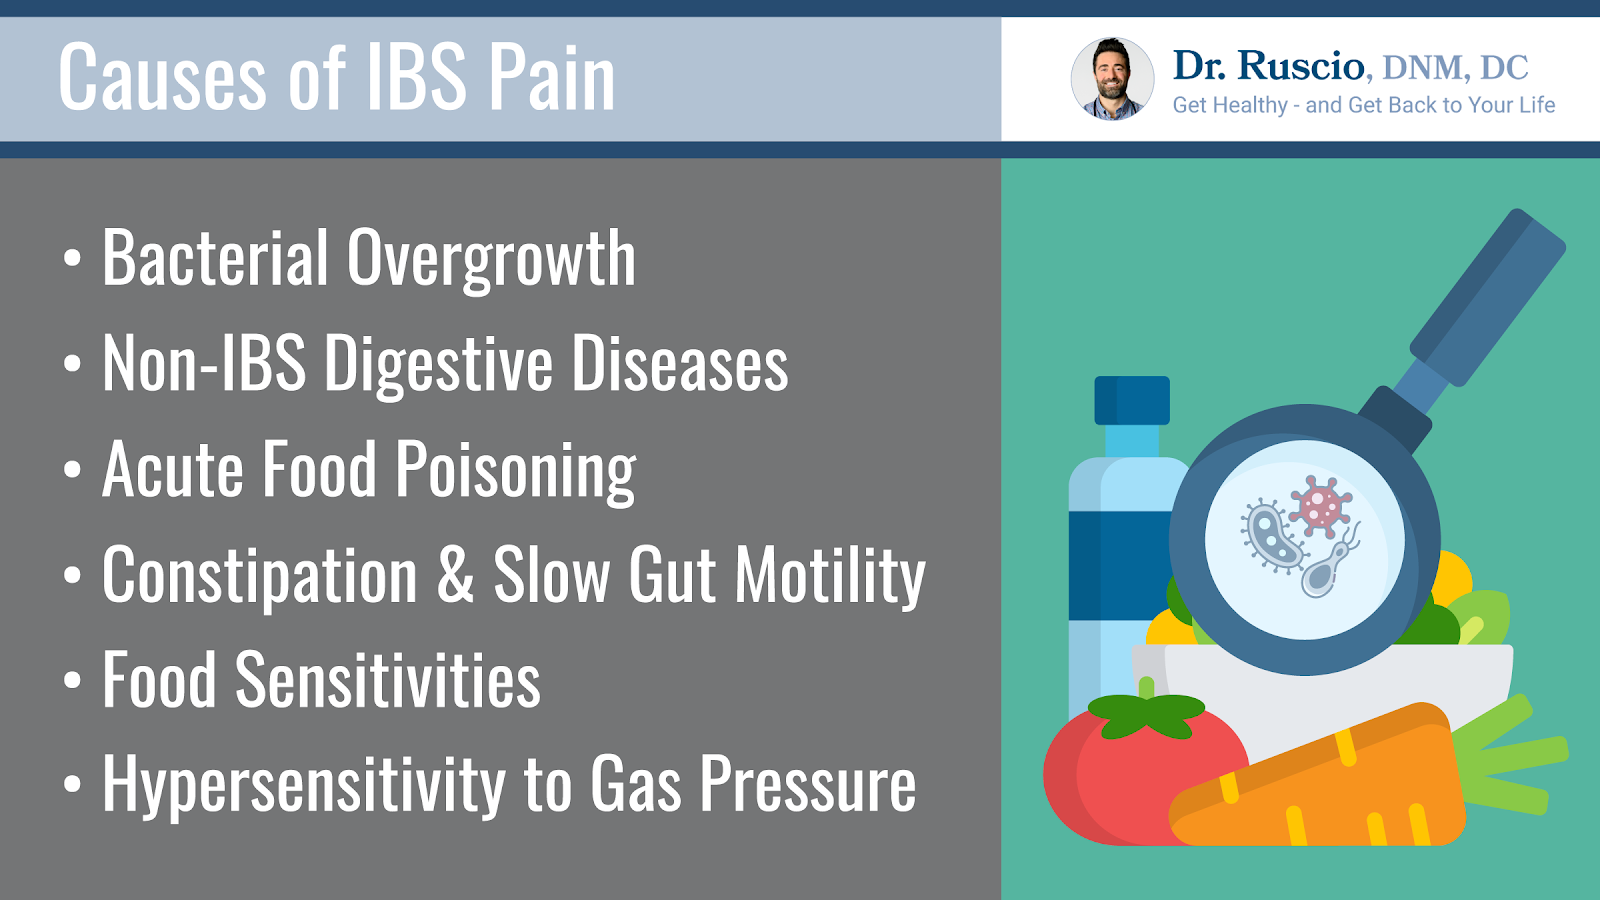 List of IBS pain causes